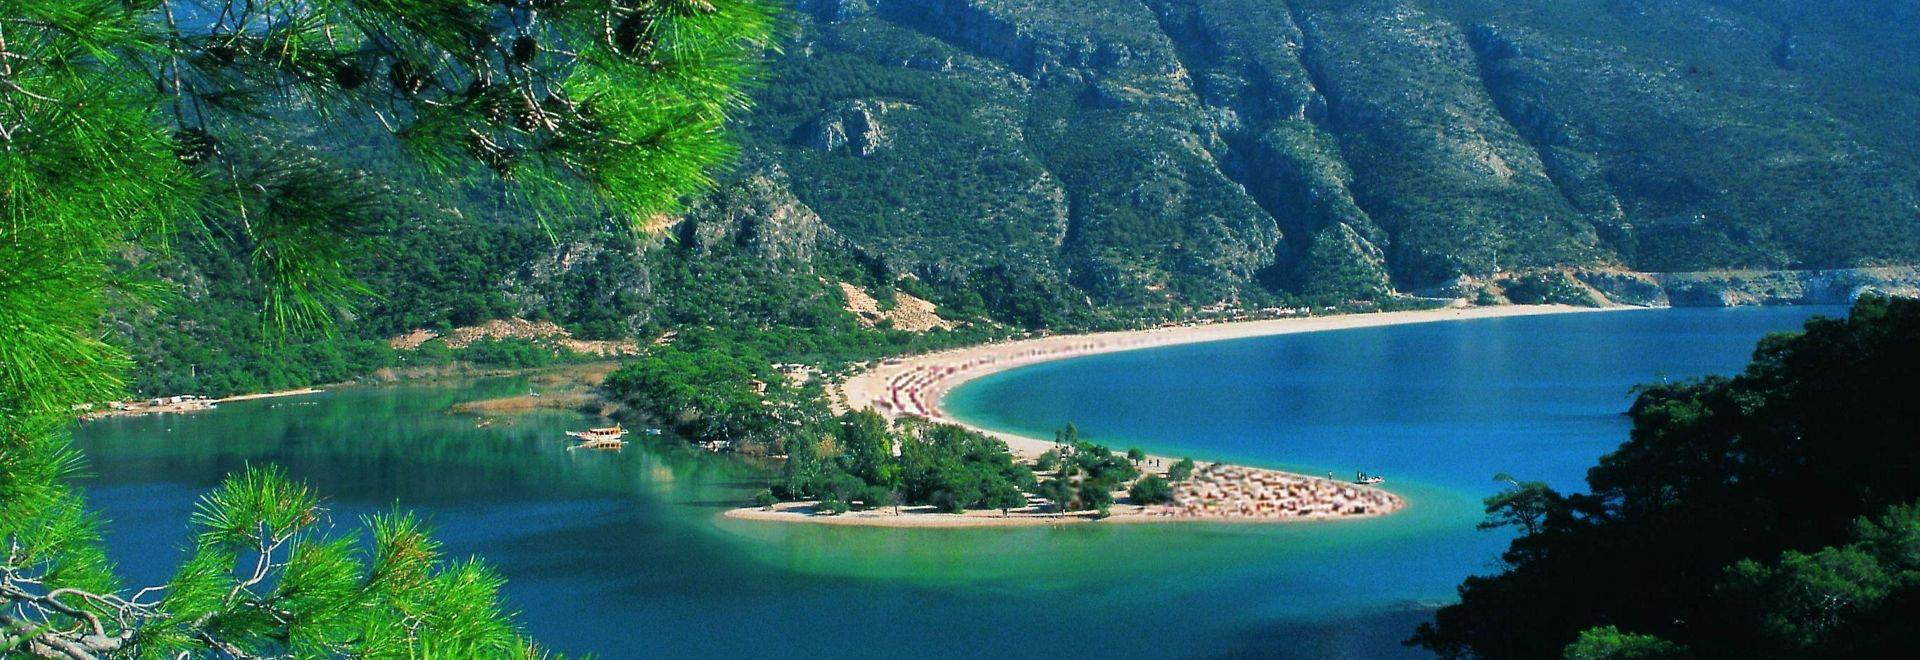 Copy Of Oludeniz Beach And Lagoon And Paragliders